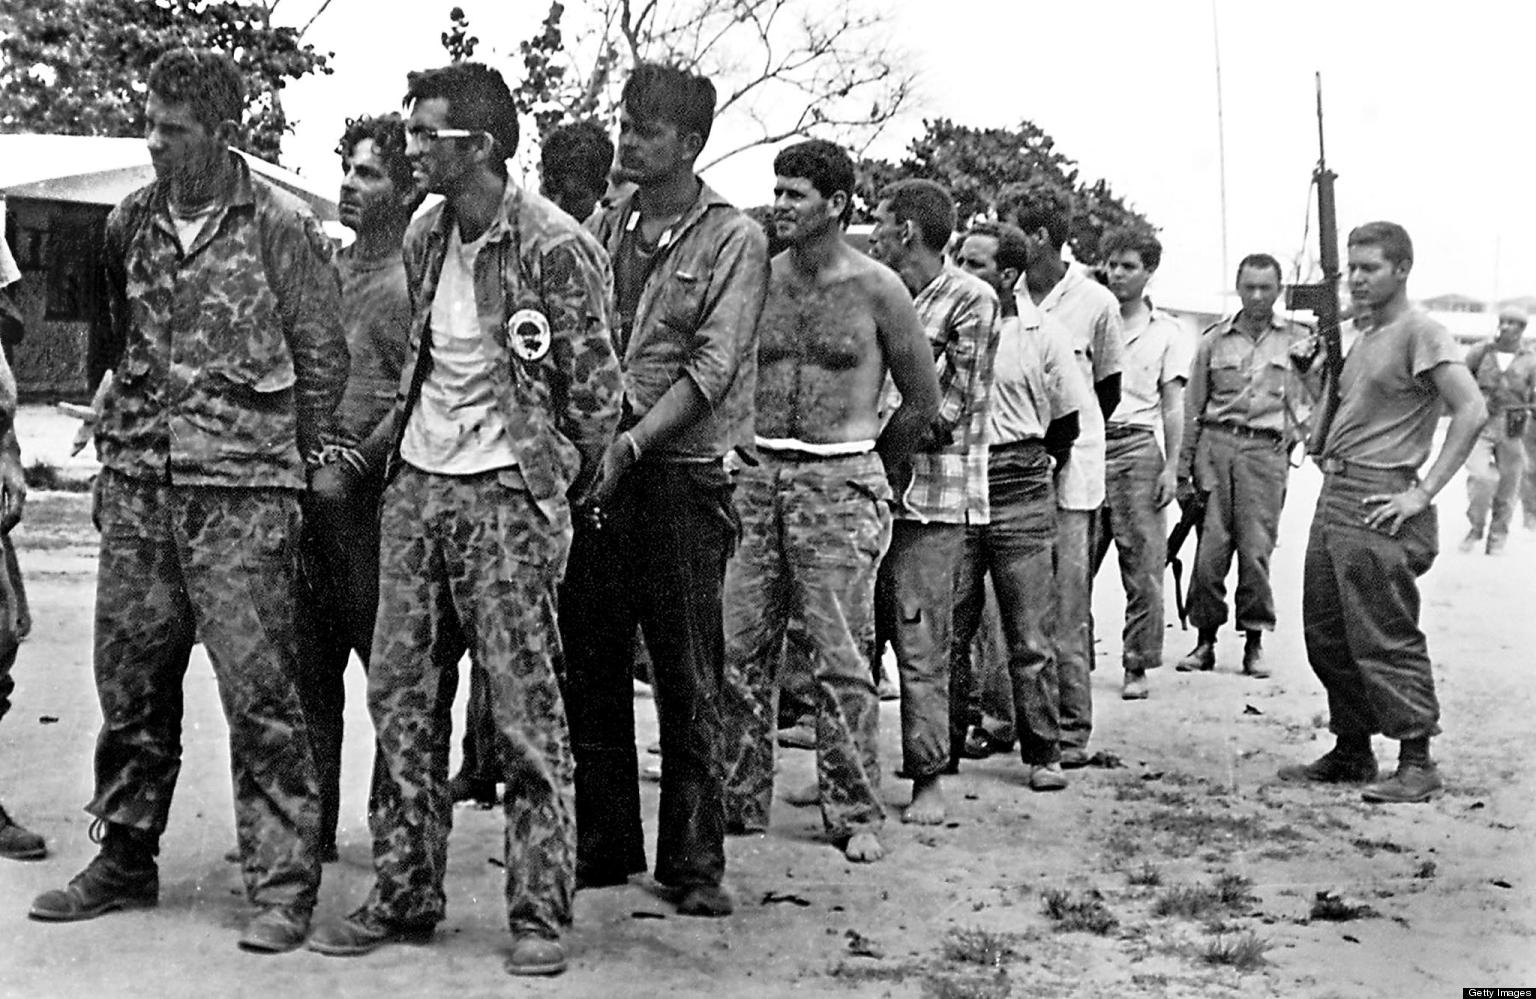 the failed invasion of cuba at the bay of pigs Overthrow fidel castro the question in focus is: why did this planned attack, called the bay of pigs invasion was sent to destroy cuba's air force but failed to background information on the bay of pigs invasion jfk in history: the bay of pigs, john f kennedy presidential.